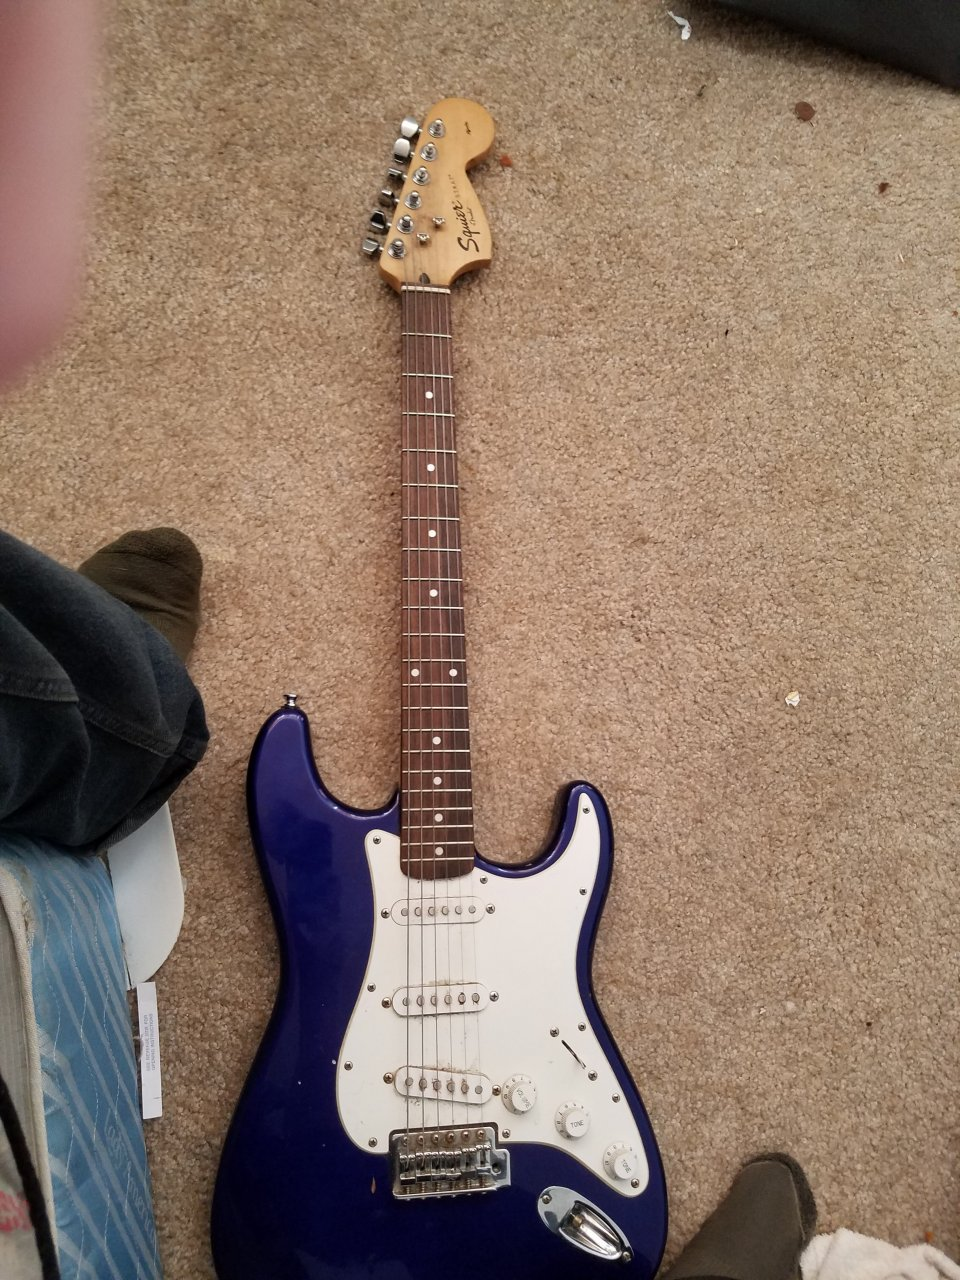 I Have A Squier Stratocastor Fender  It Has An S/n Ic 031225